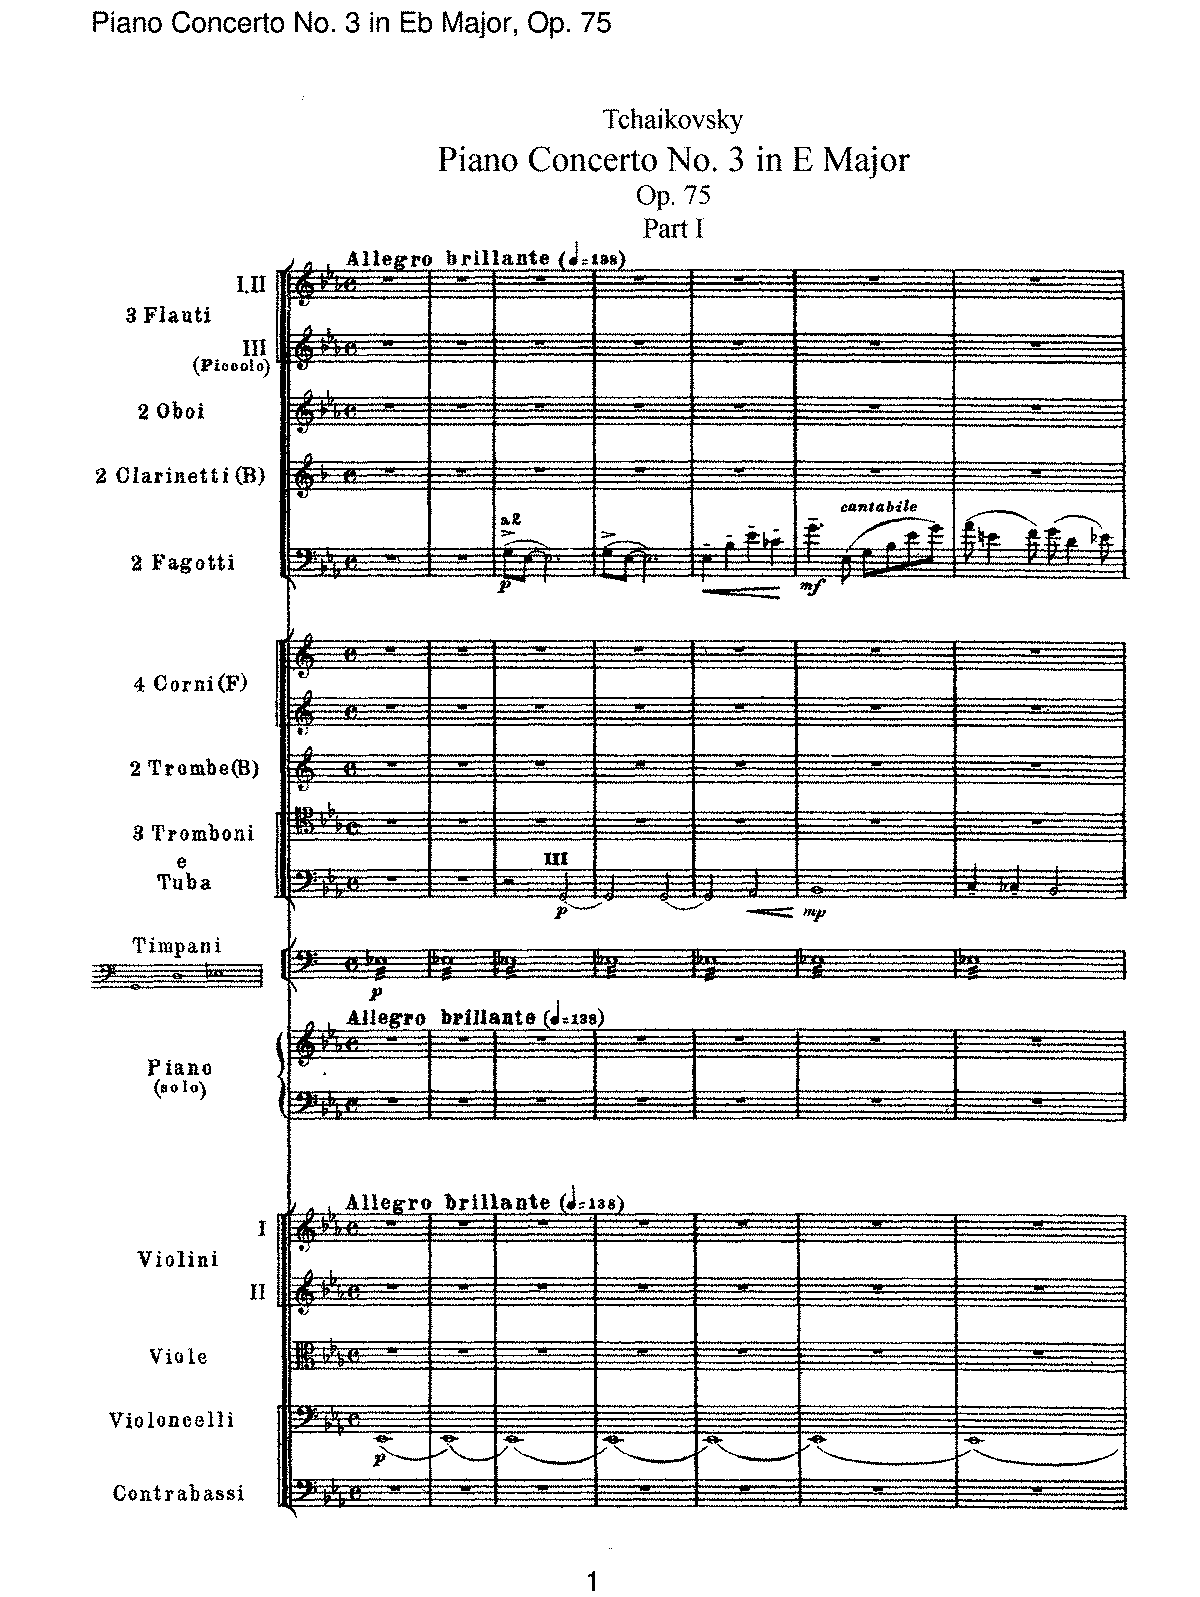 Tchaikovsky - Piano Concerto No. 3 in Eb Major, Op. 75-1.pdf